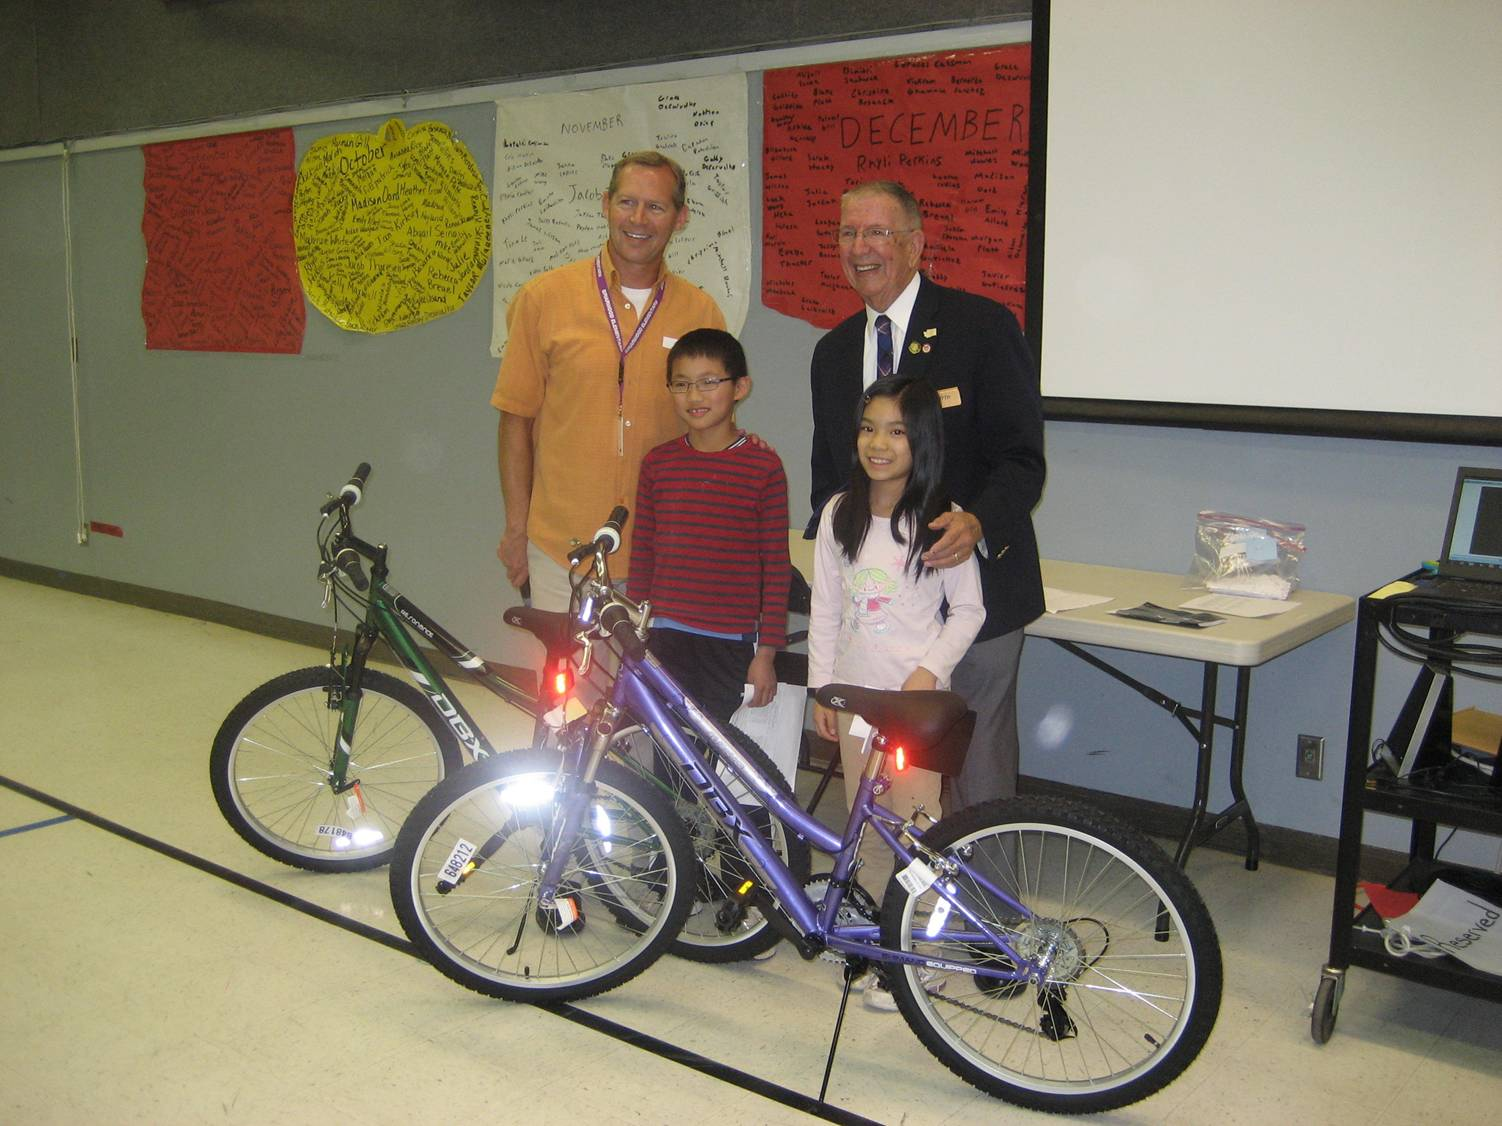 The 2012 Bikes for Books winners